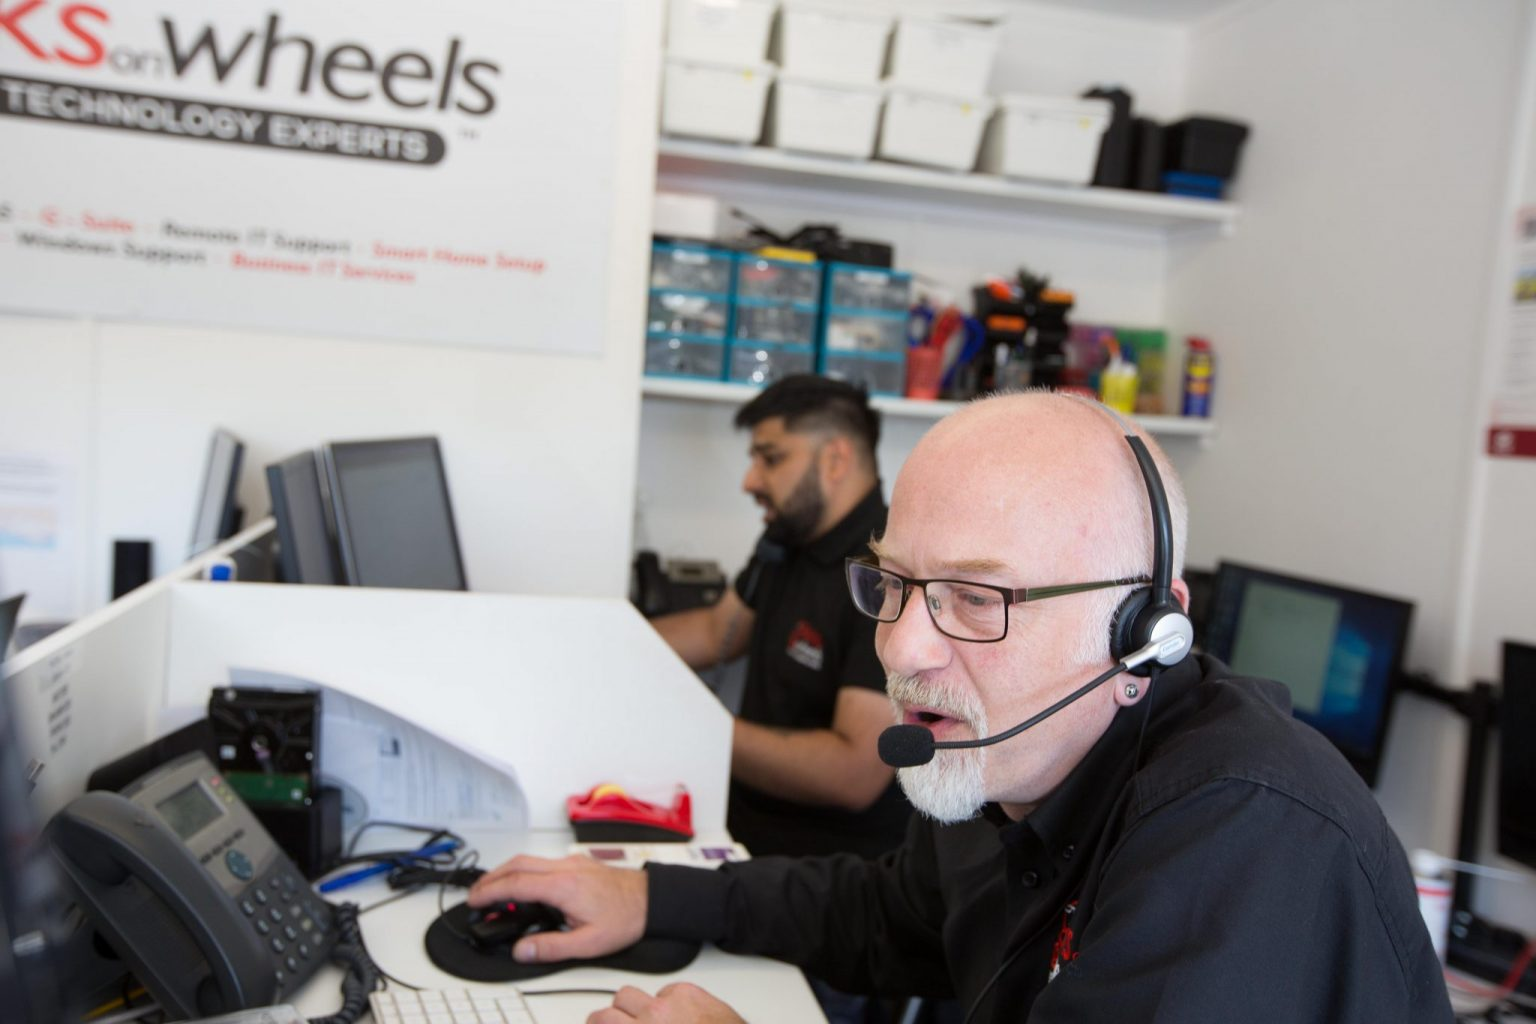 Geeks On Wheels team member speaking to a customer remotely using a headset